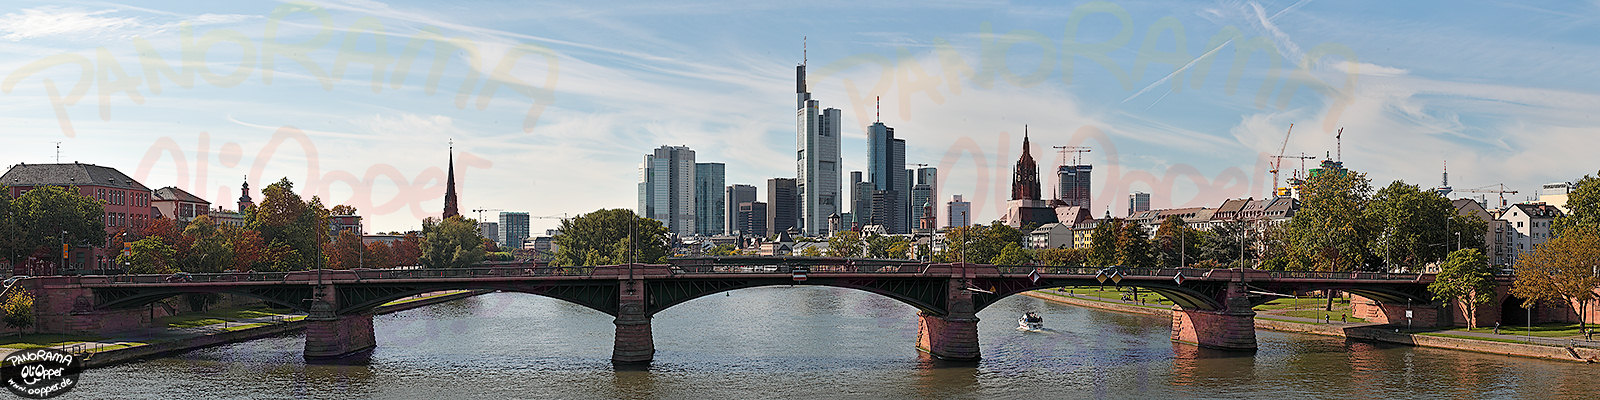 Panorama Frankfurt - Skyline am Tag - p299 - (c) by Oliver Opper